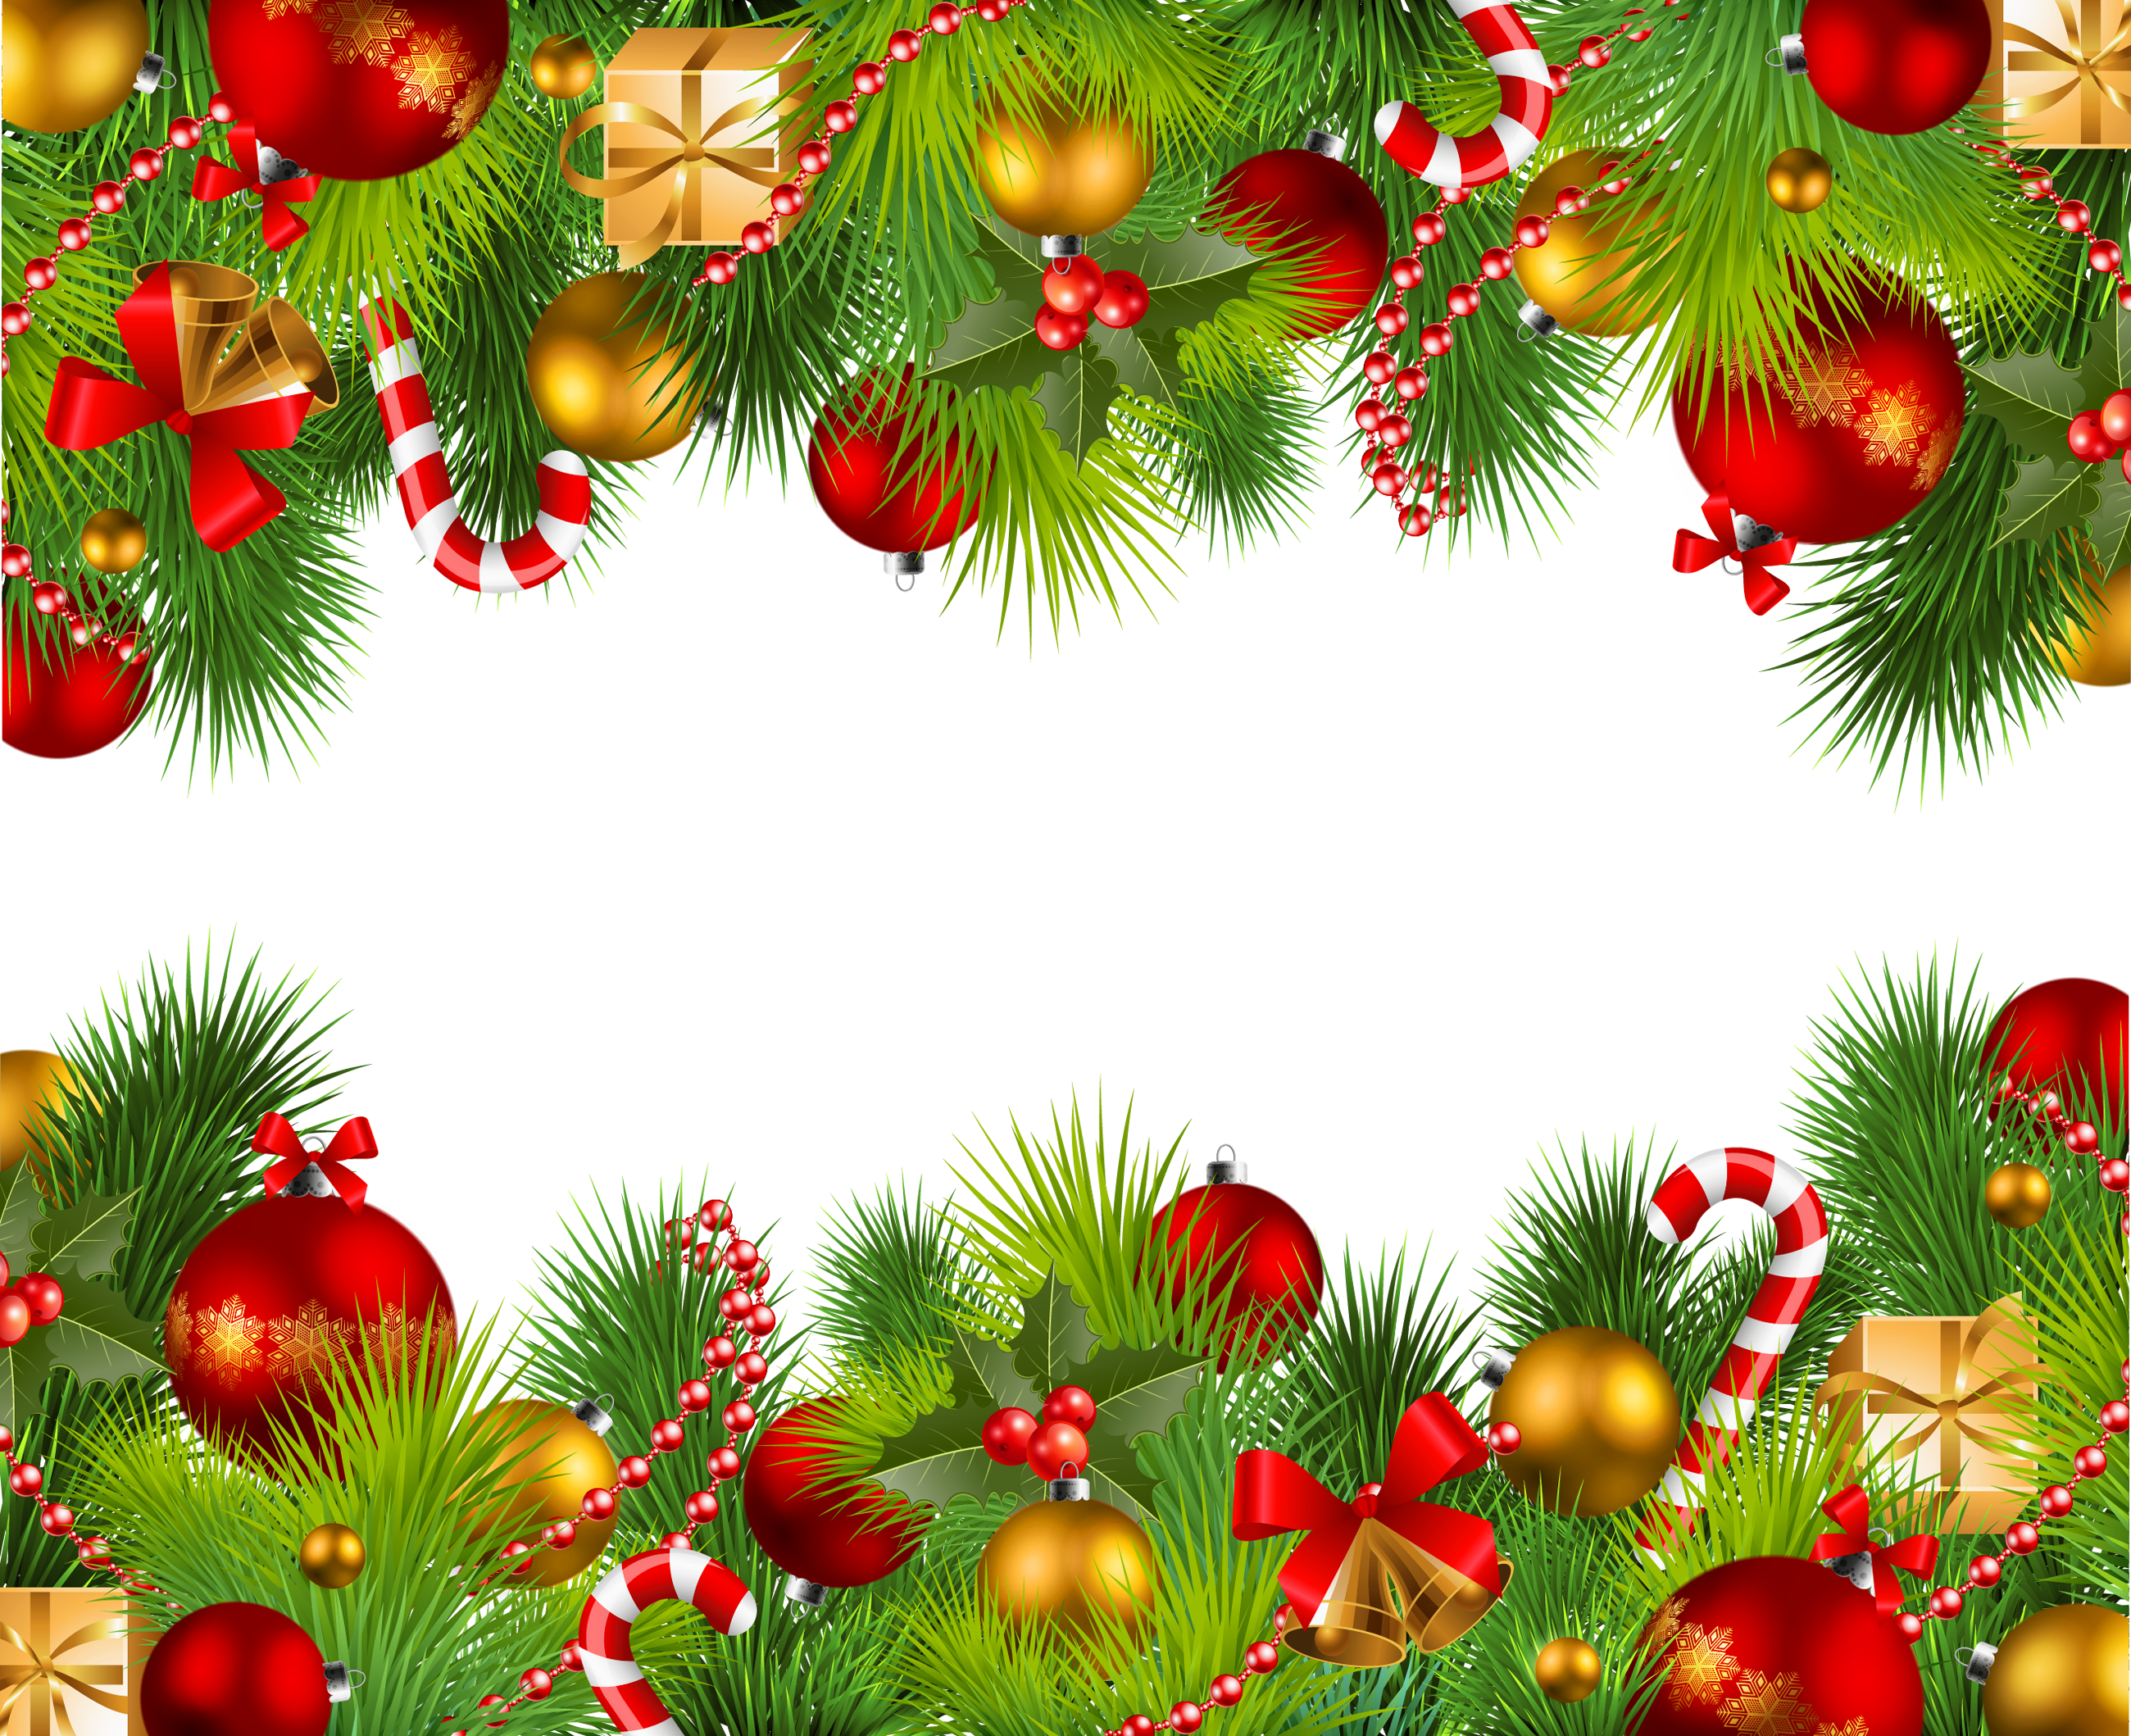 Christmas background png. Beautiful transparent photo frame